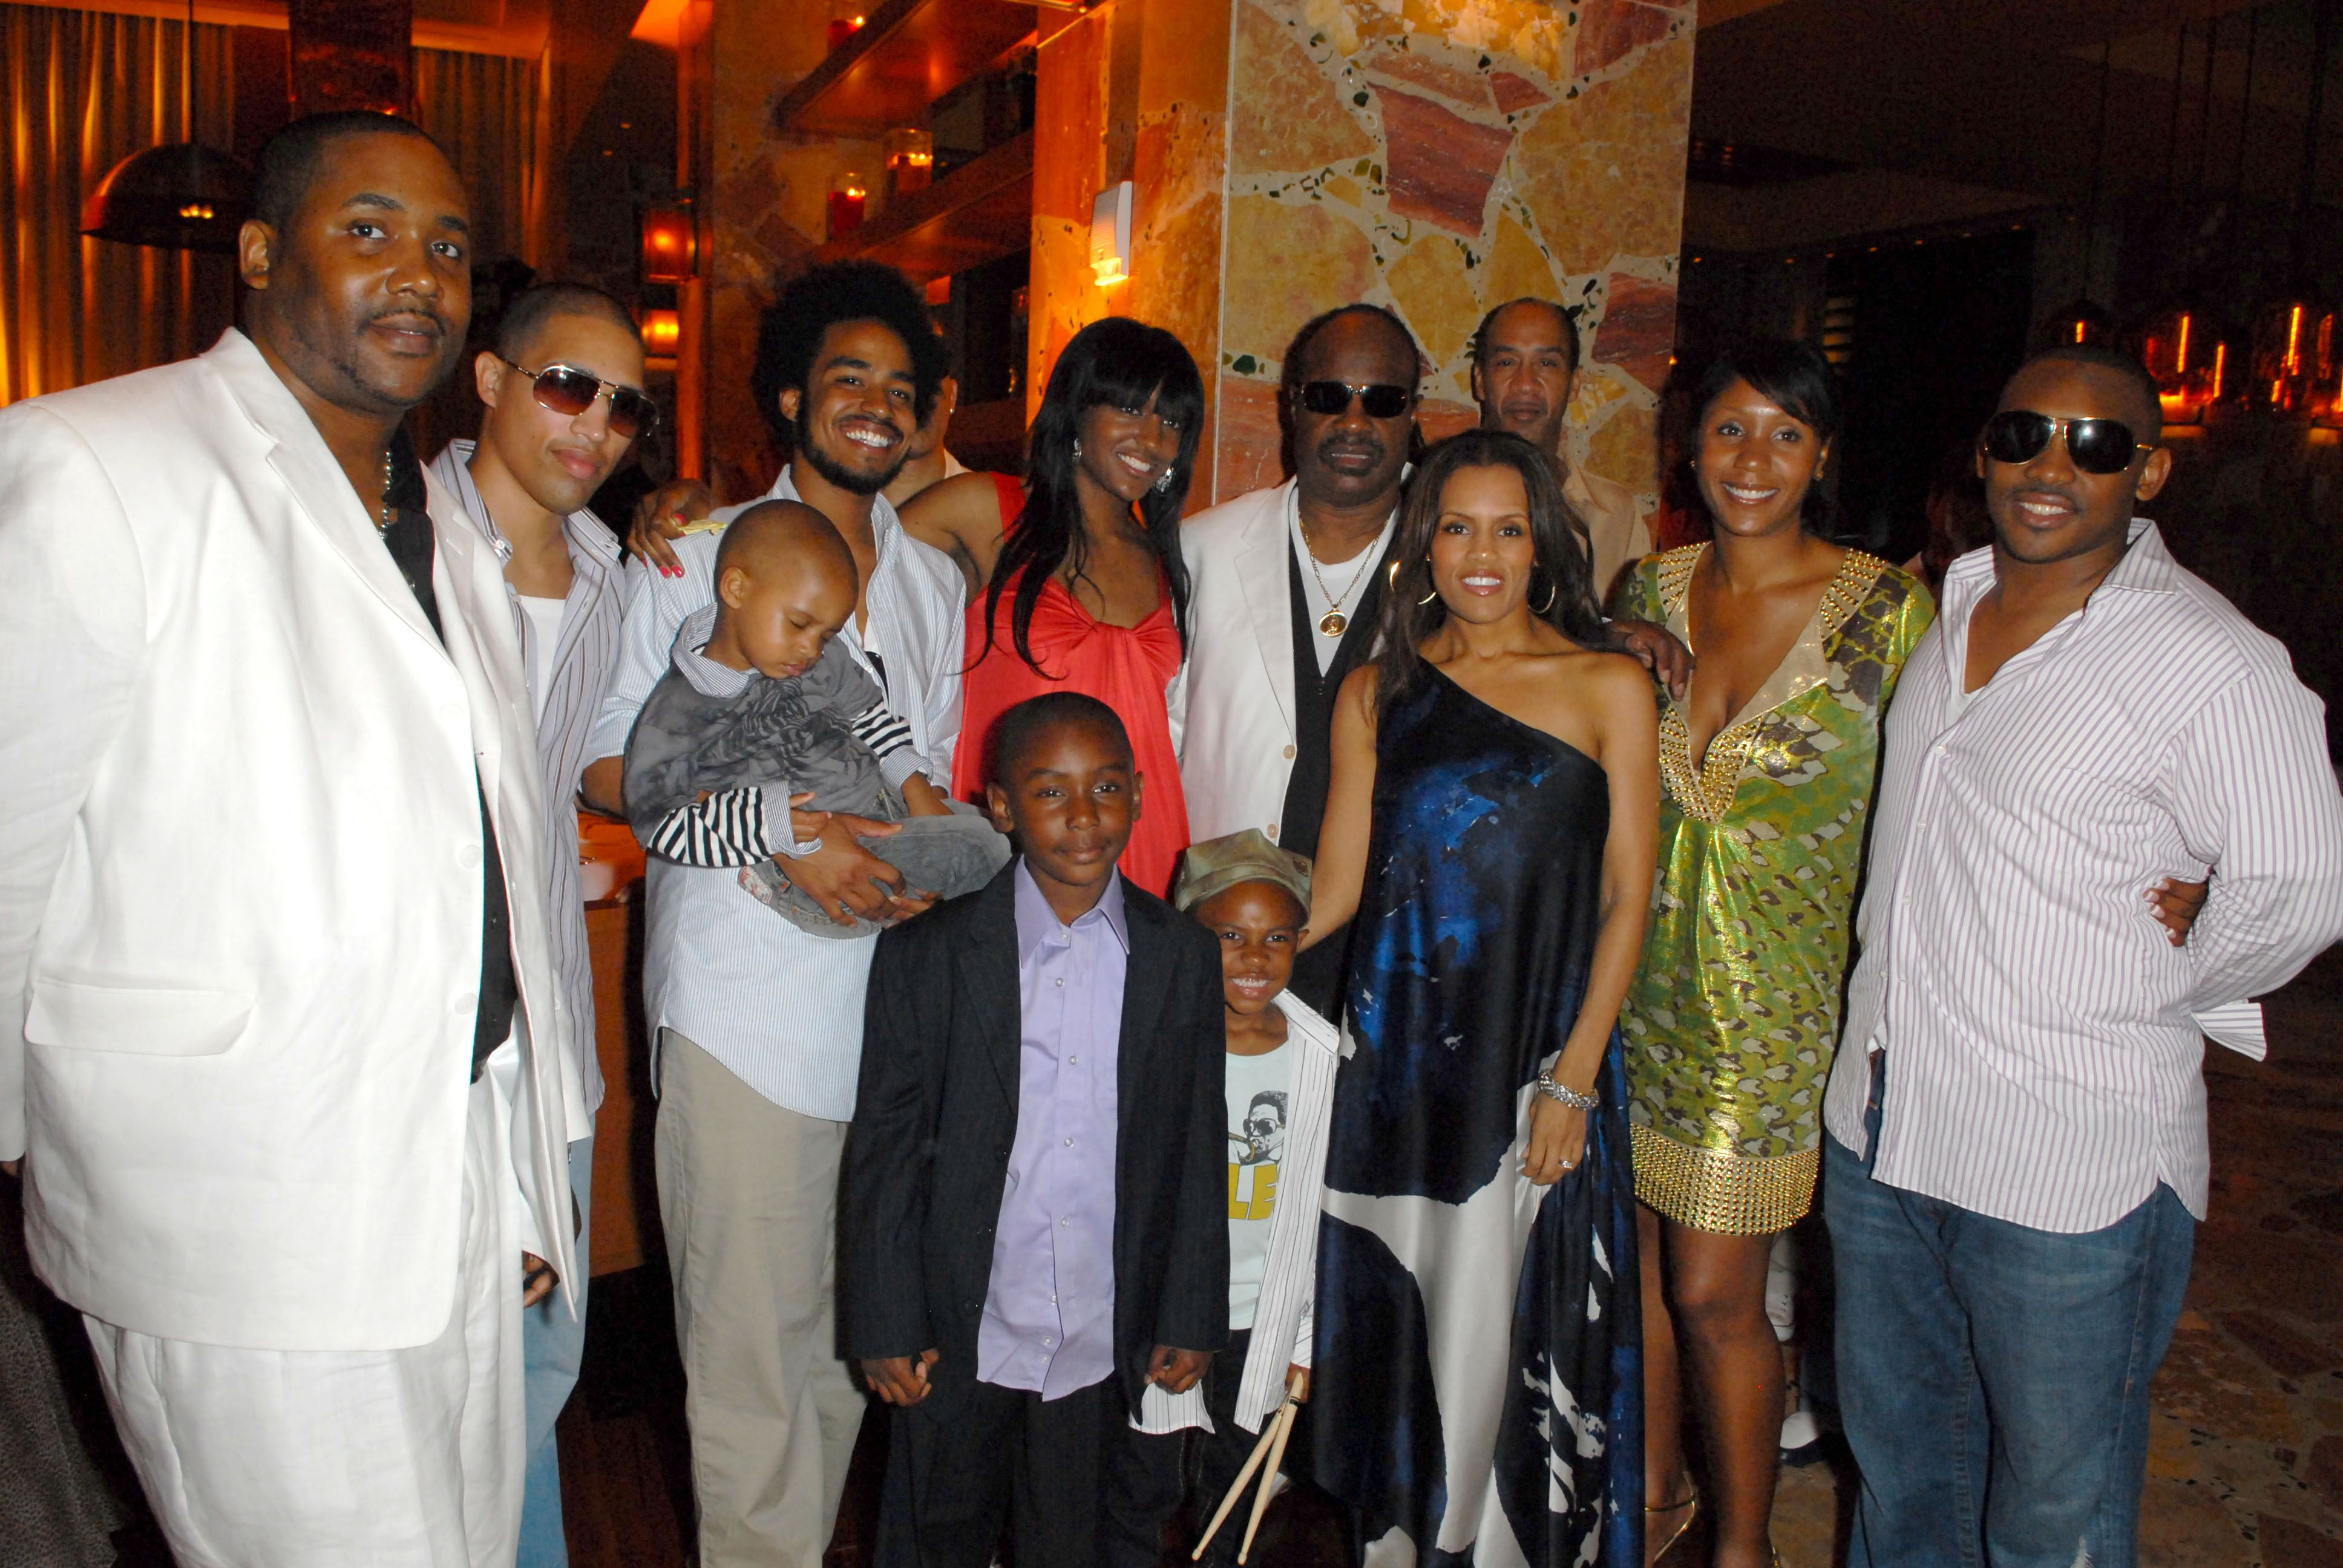 Stevie Wonder and his family attend Sol Kerzner's 57th birthday celebration at The Cove Atlantis Resort on Paradise Island   Source: Getty Images